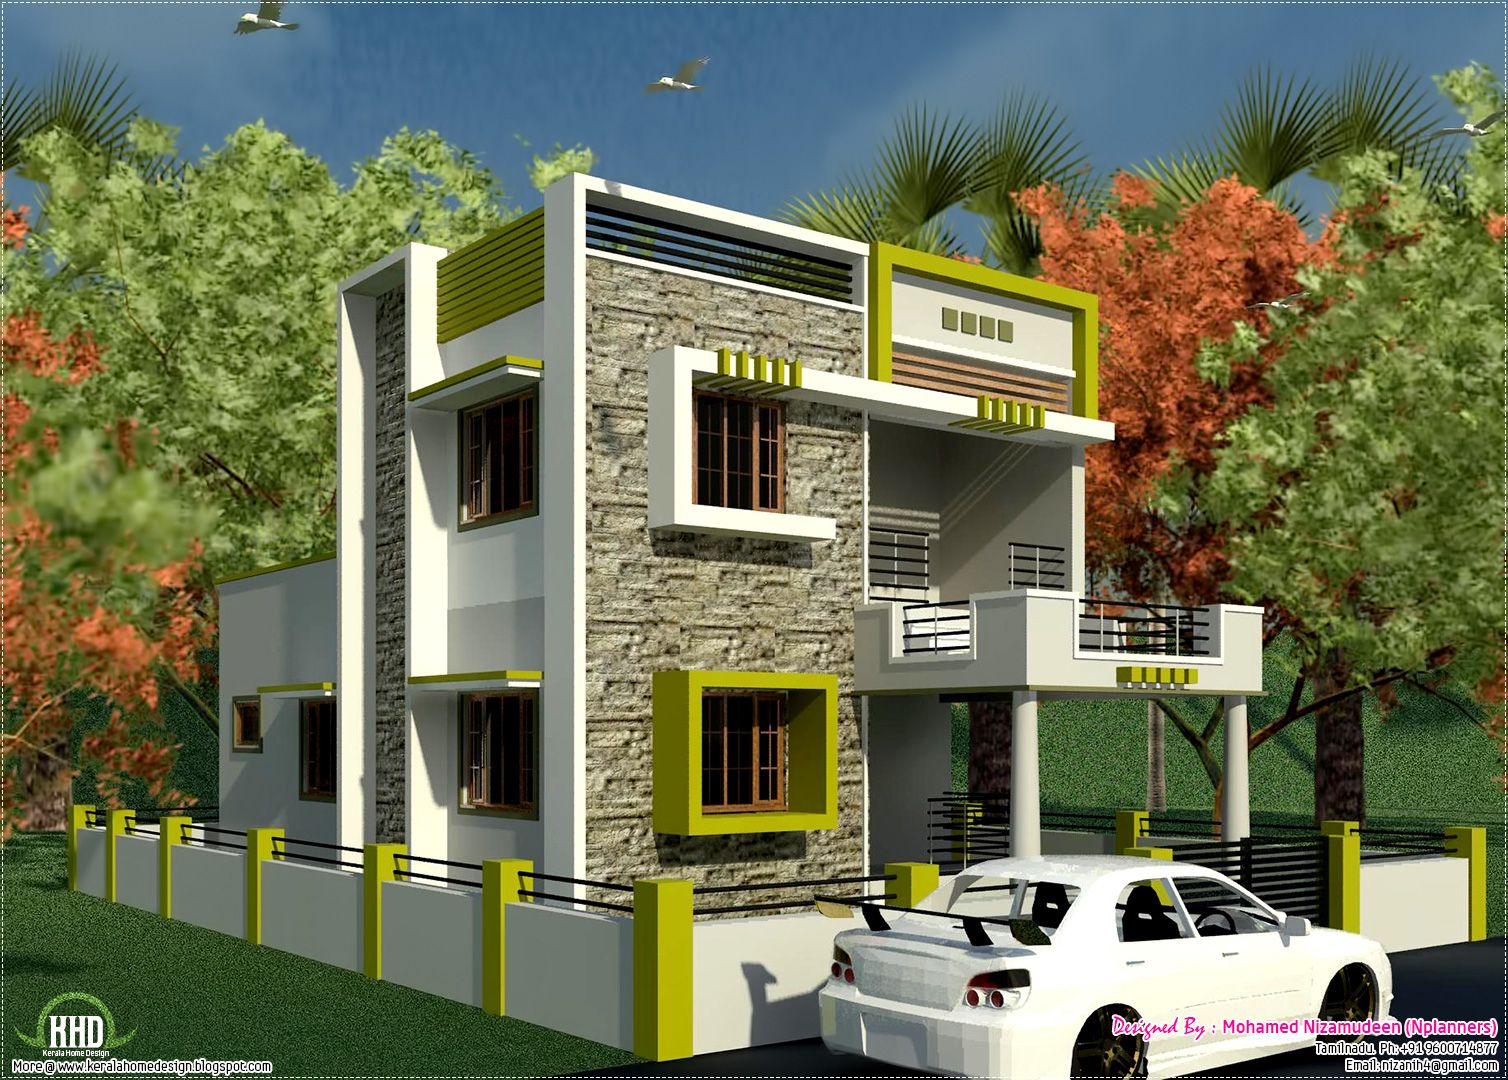 Small house with car park design tobfav com ideas for for Indian small house photos